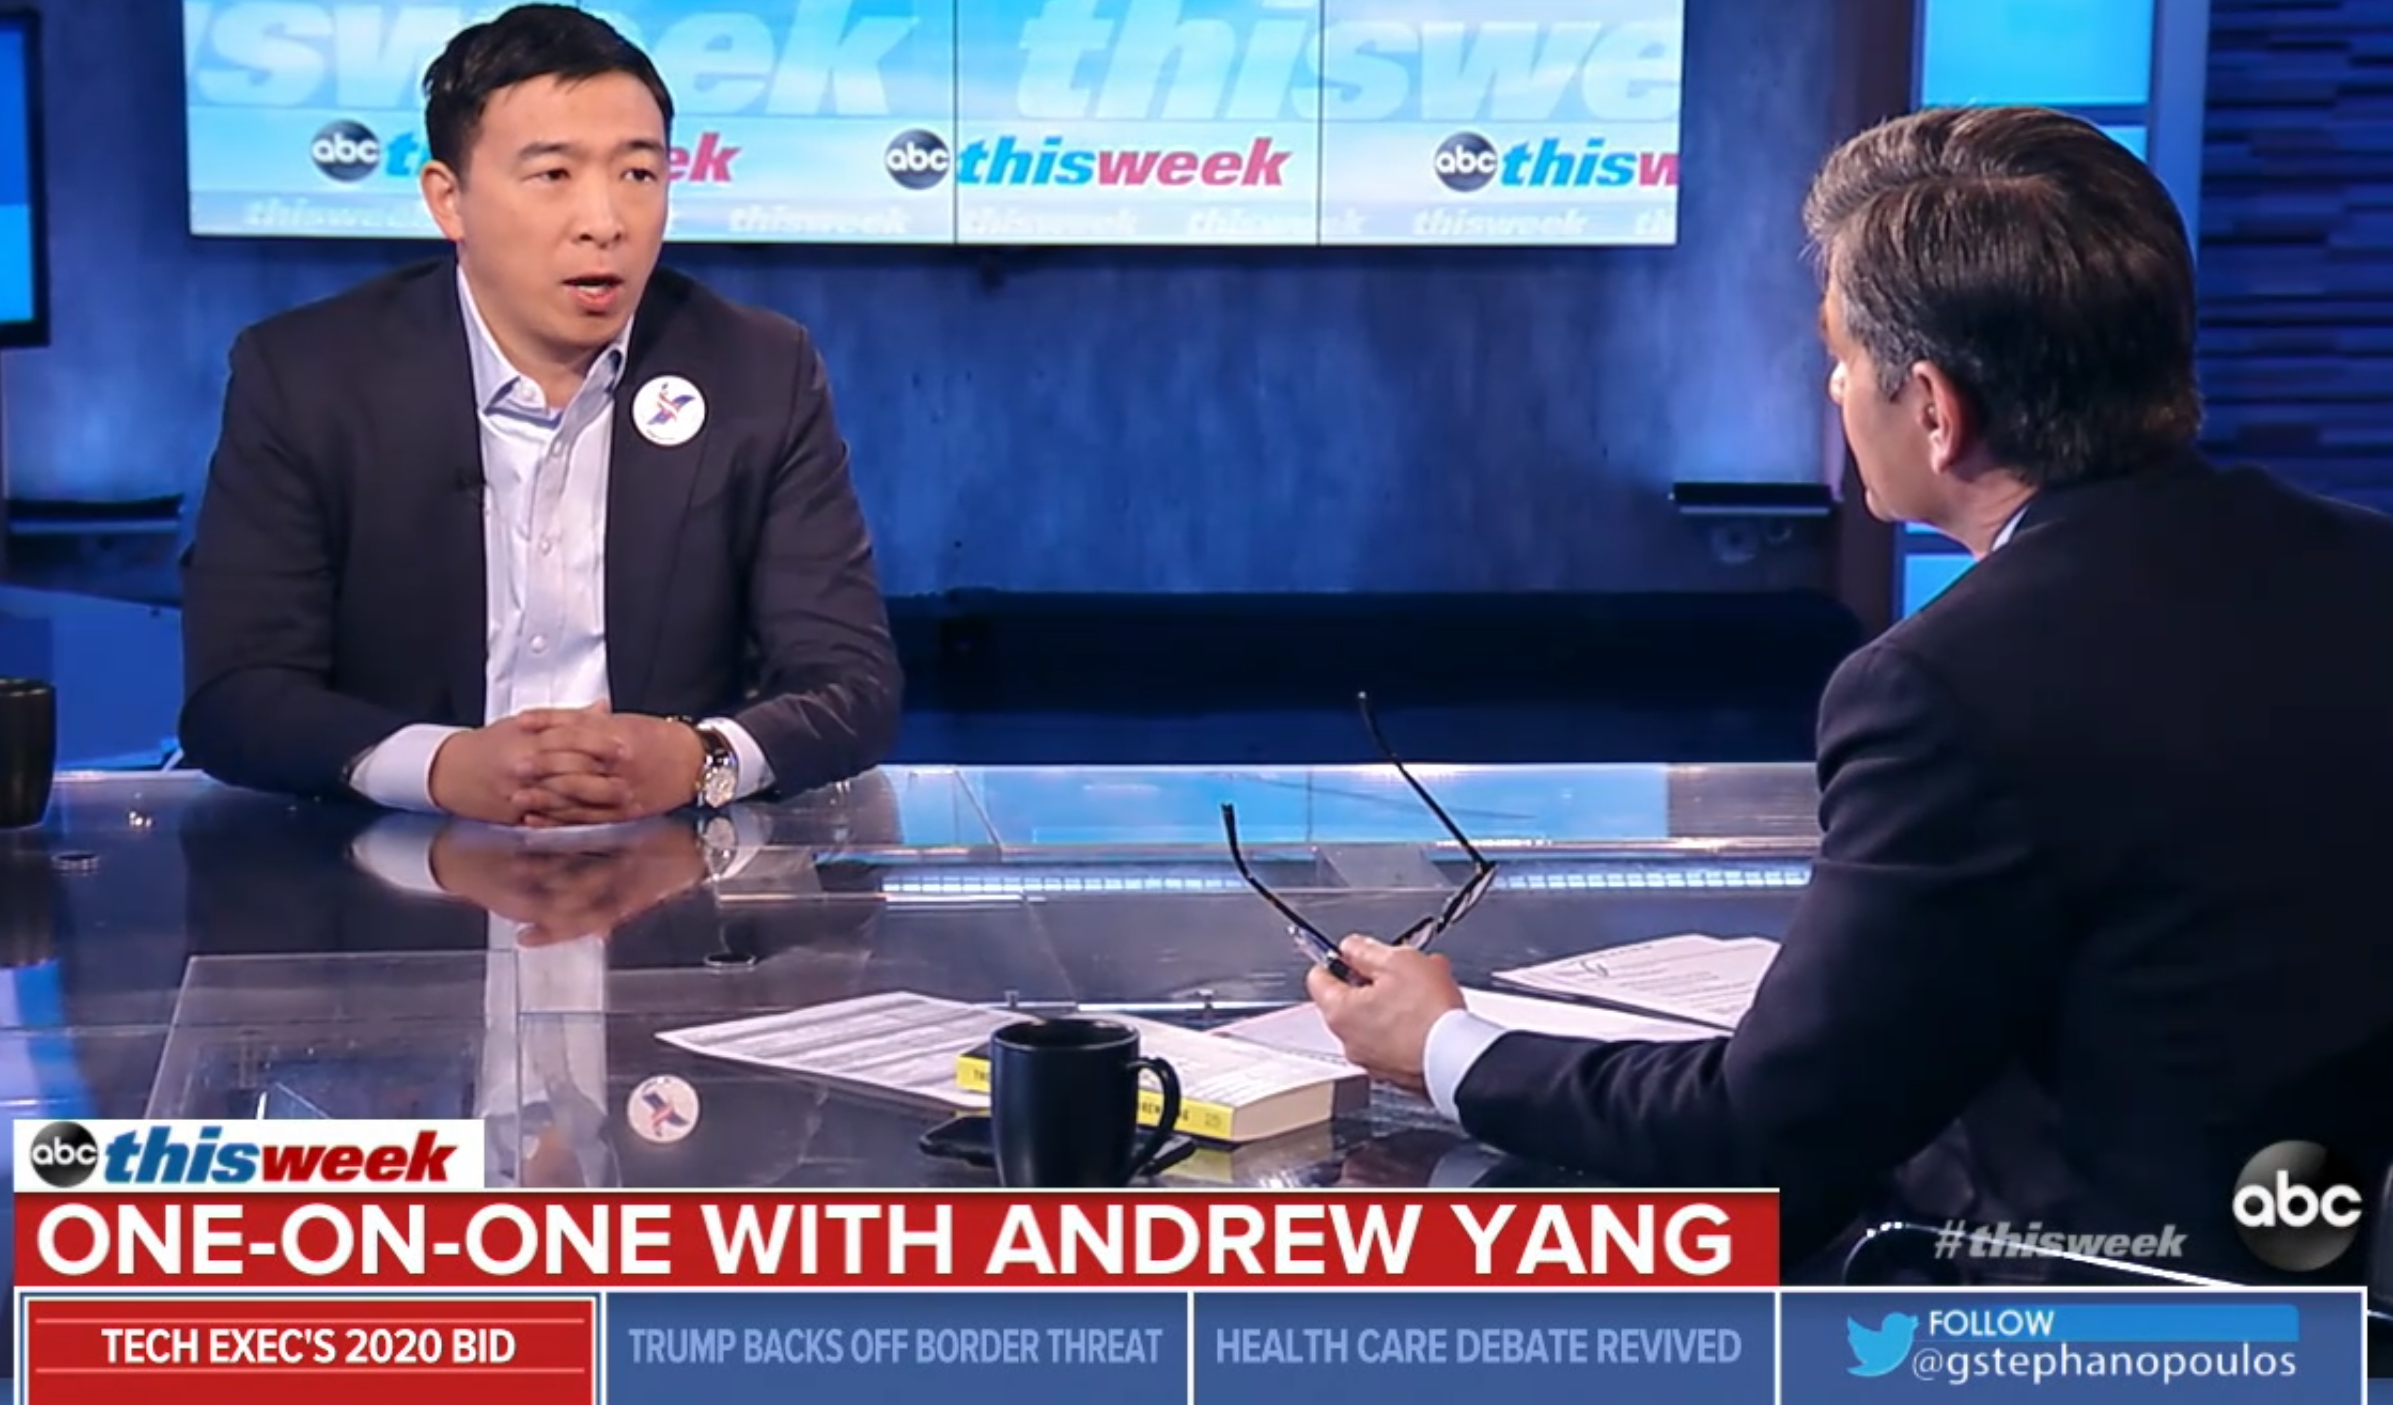 Andrew Yang addresses his campaign, automation, and other policies with George Stephanopoulos